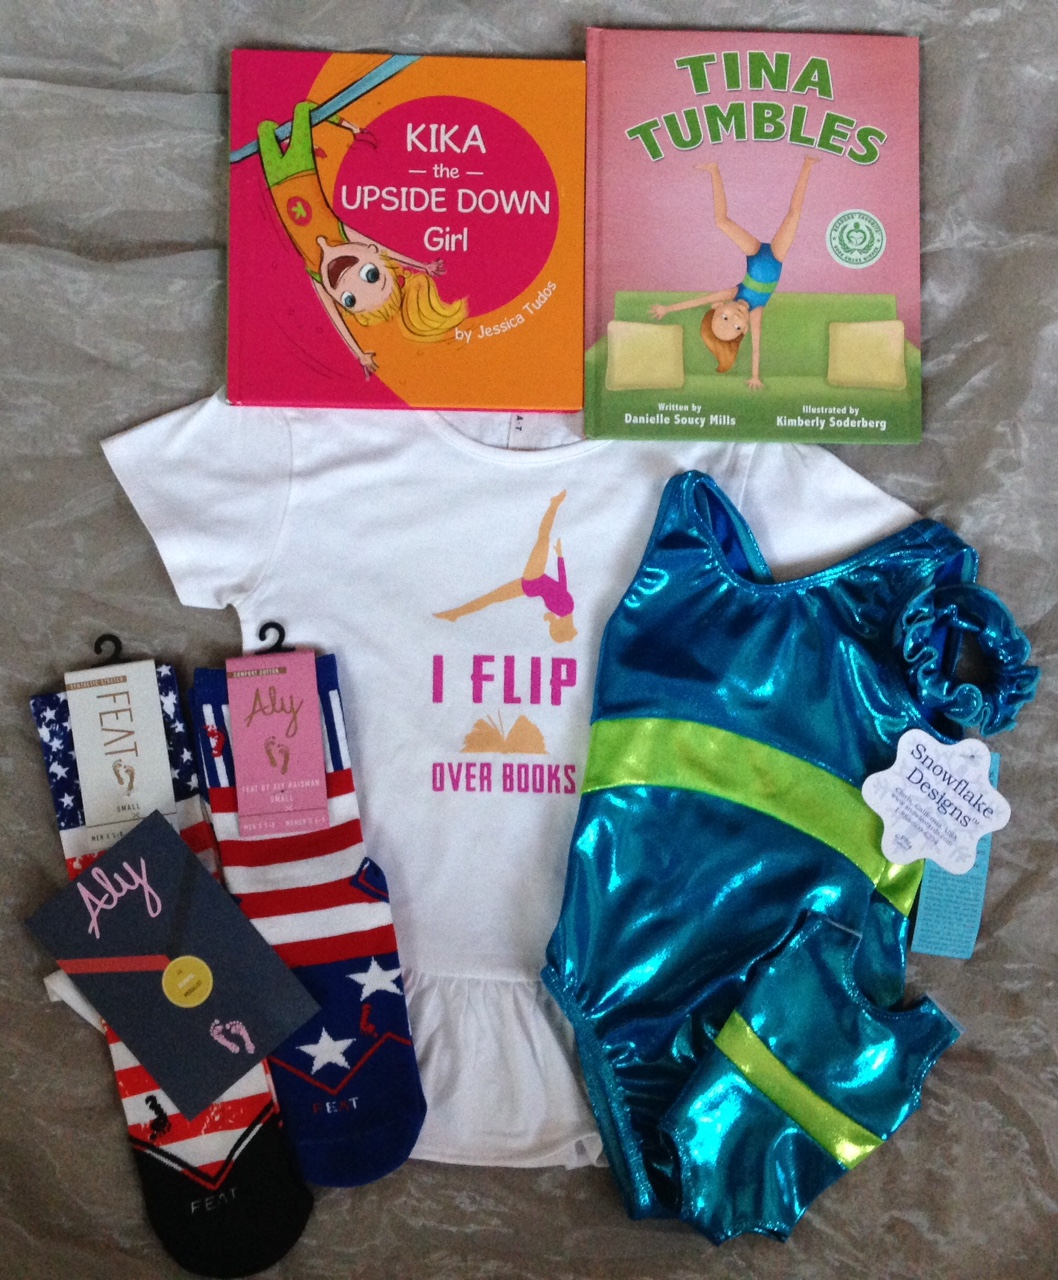 Tina Tumbles, Kika the Upside Down Girl, Leotard set by Snowflake Designs, I Flip Over Books T-shirt, Feat socks including Feat by Aly Raisman